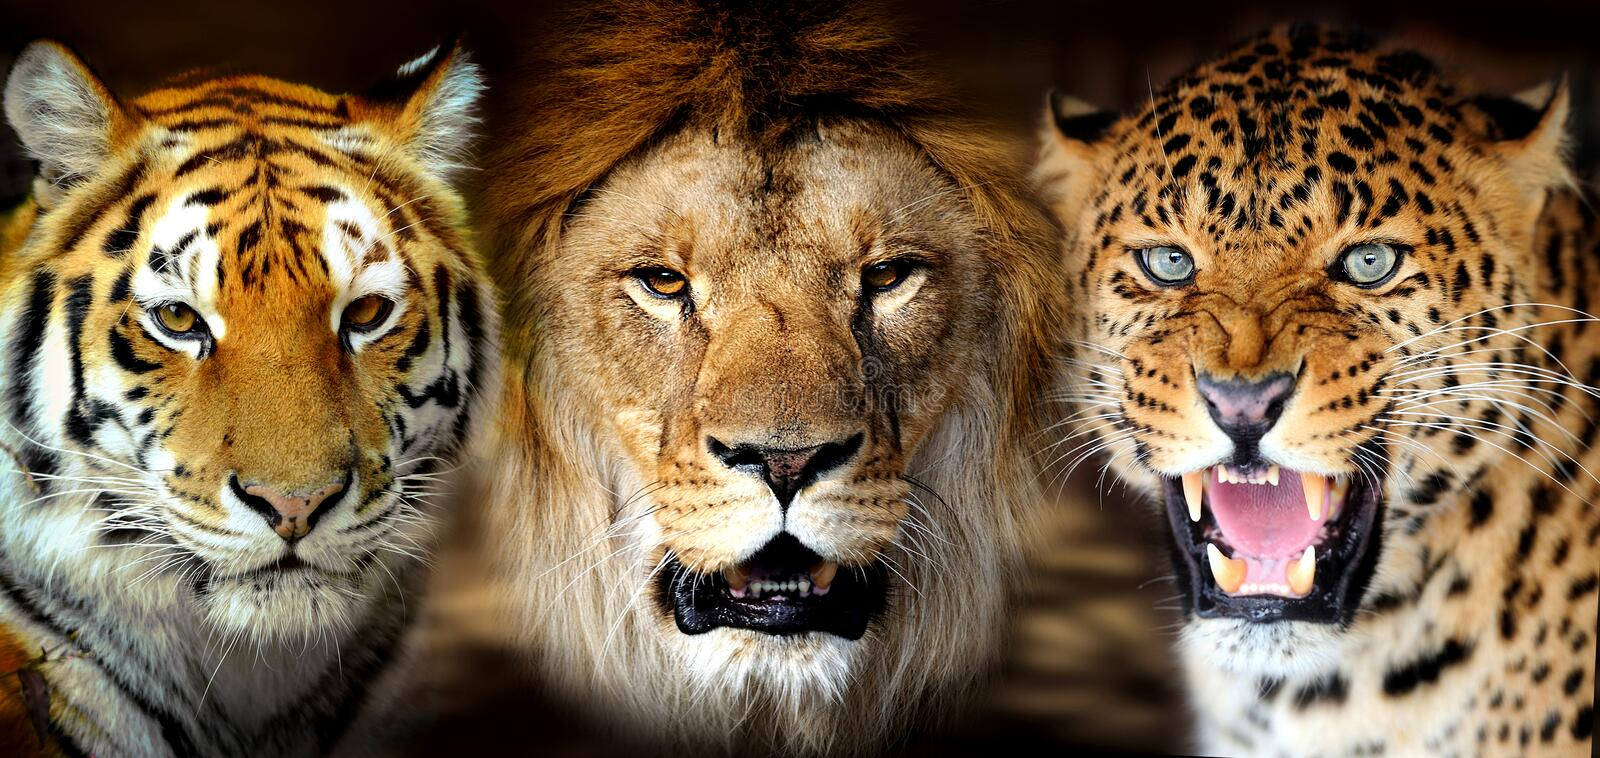 Tiger, lion, leopard royalty free stock images